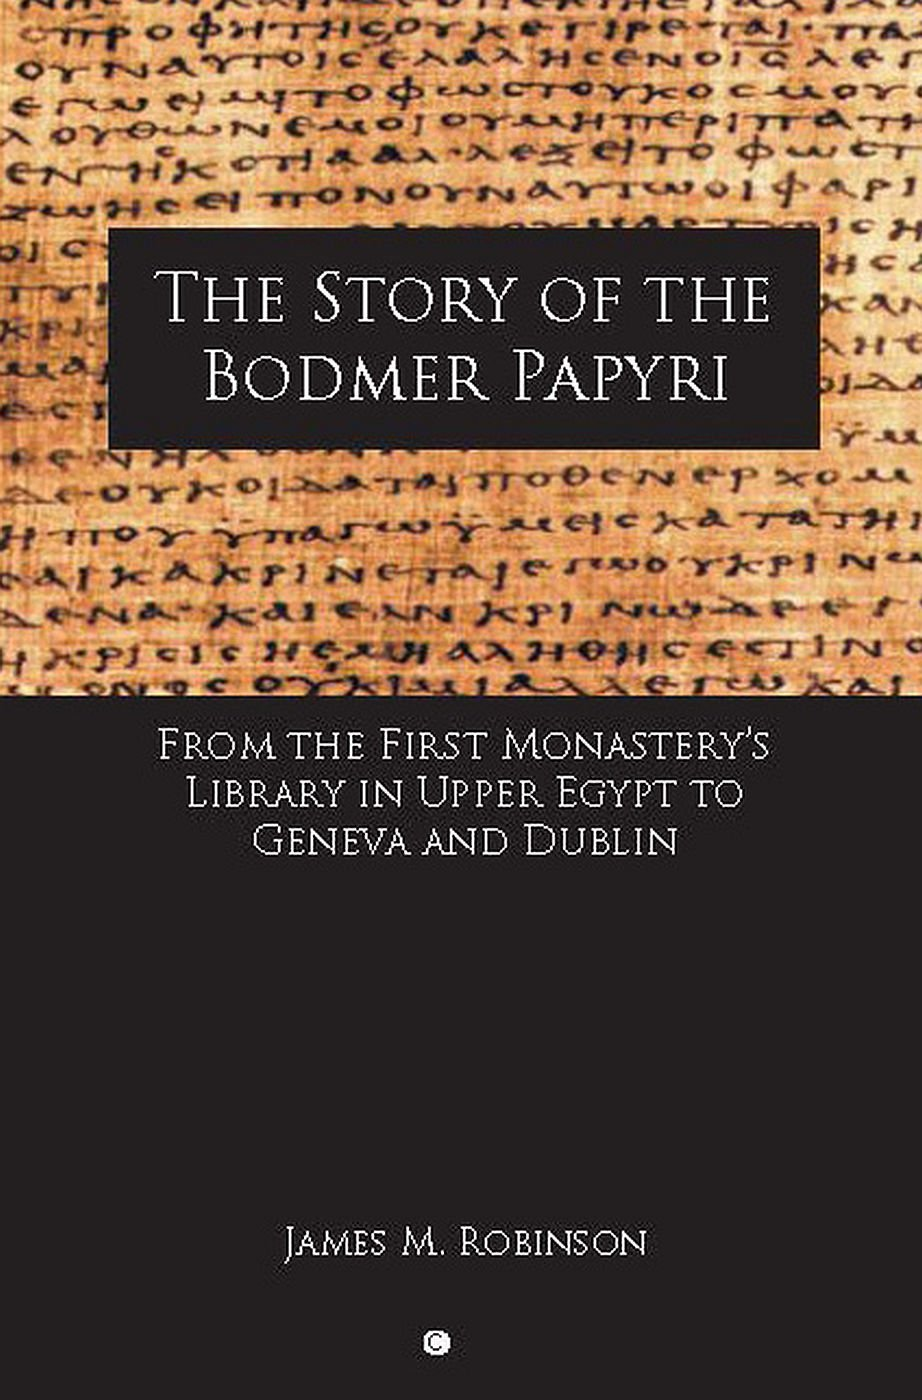 The Story of the Bodmer Papyri: From the First Monaster's Library in Upper Egypt to Geneva and Dublin PDF